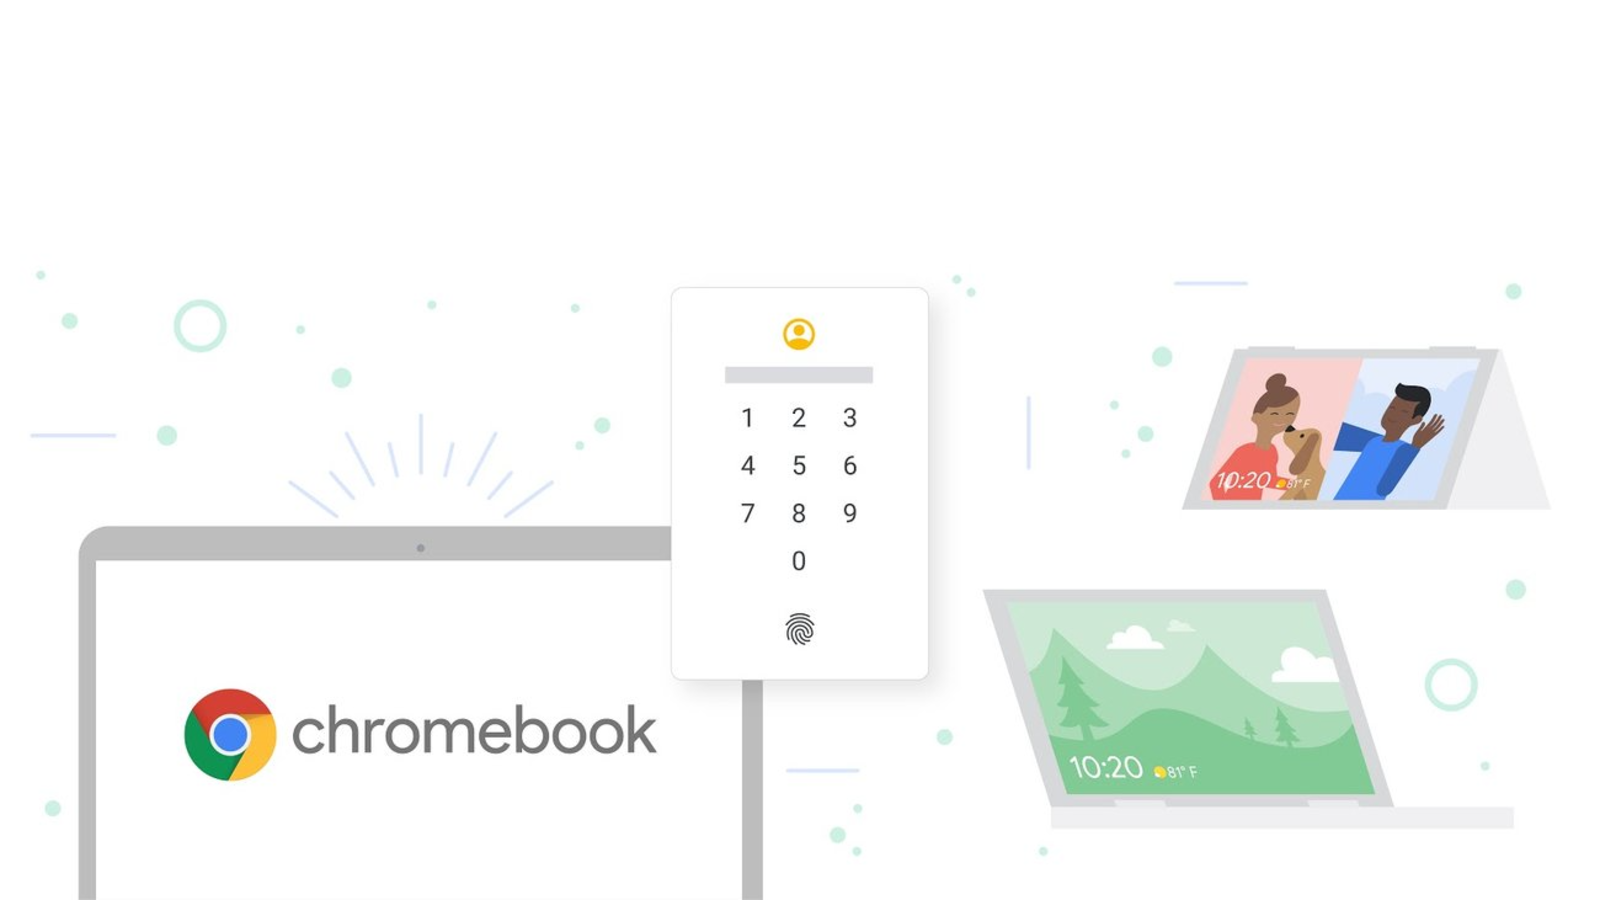 Chrome OS 88 offers a faster way to sign in to websites – by using your fingerprint or PIN code